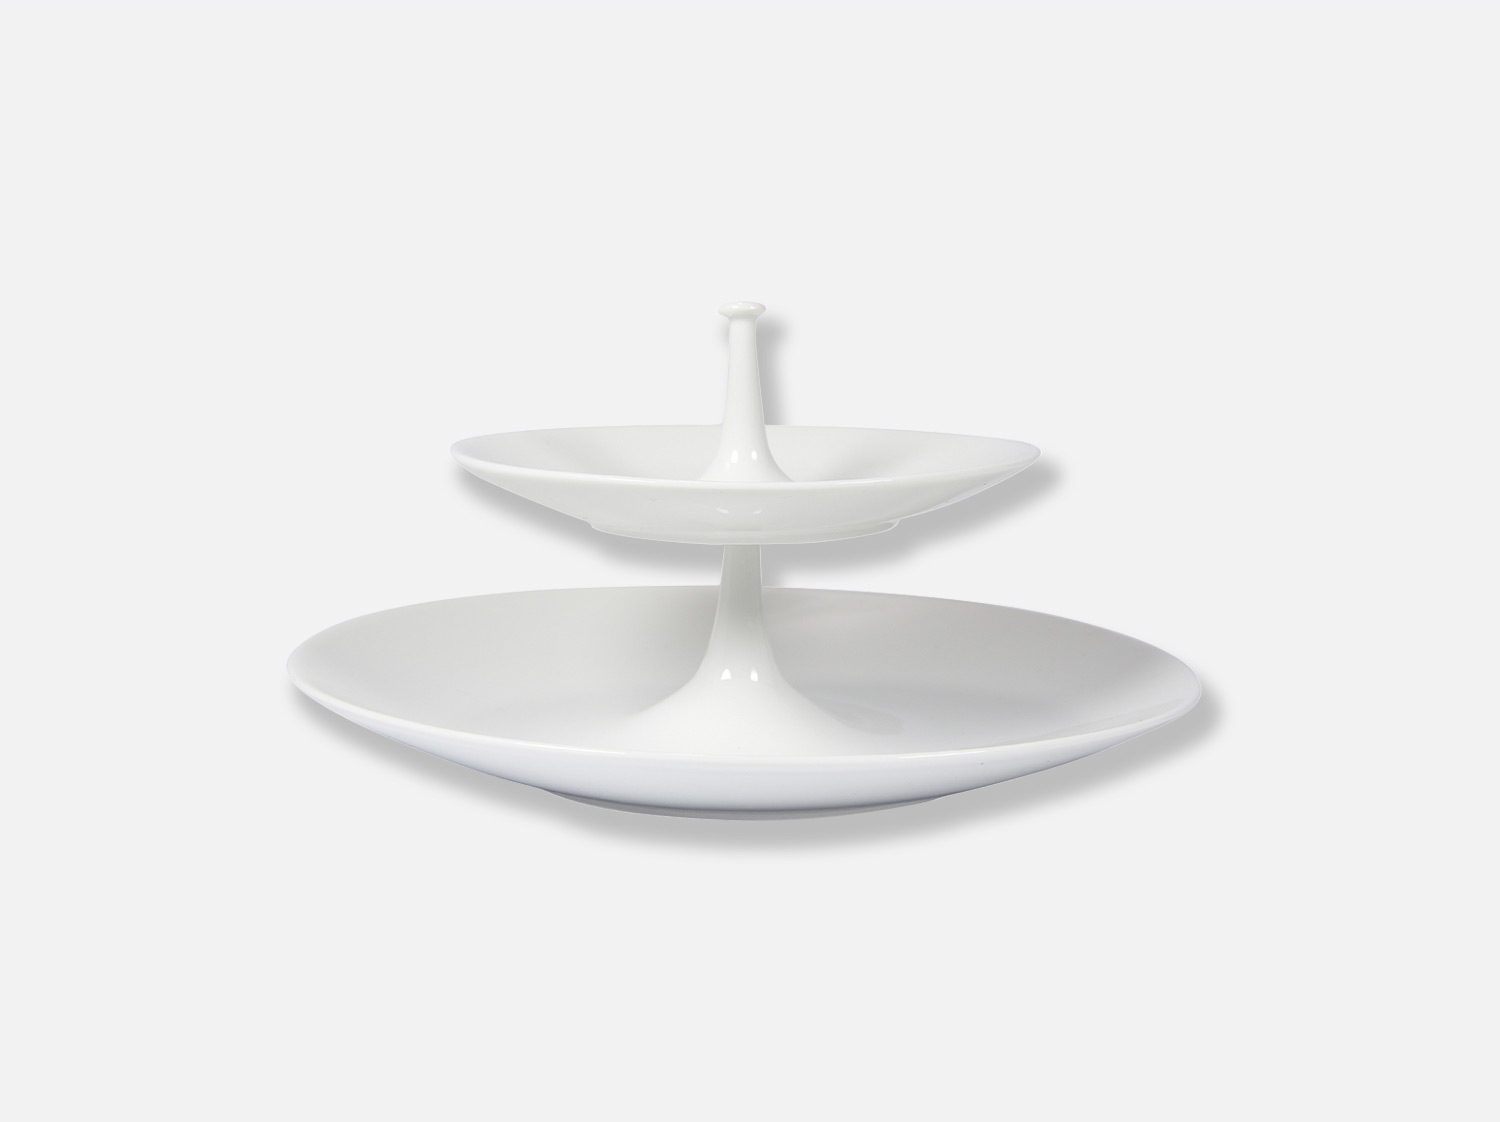 China 2-tier tray 19.5 cm of the collection Bulle | Bernardaud